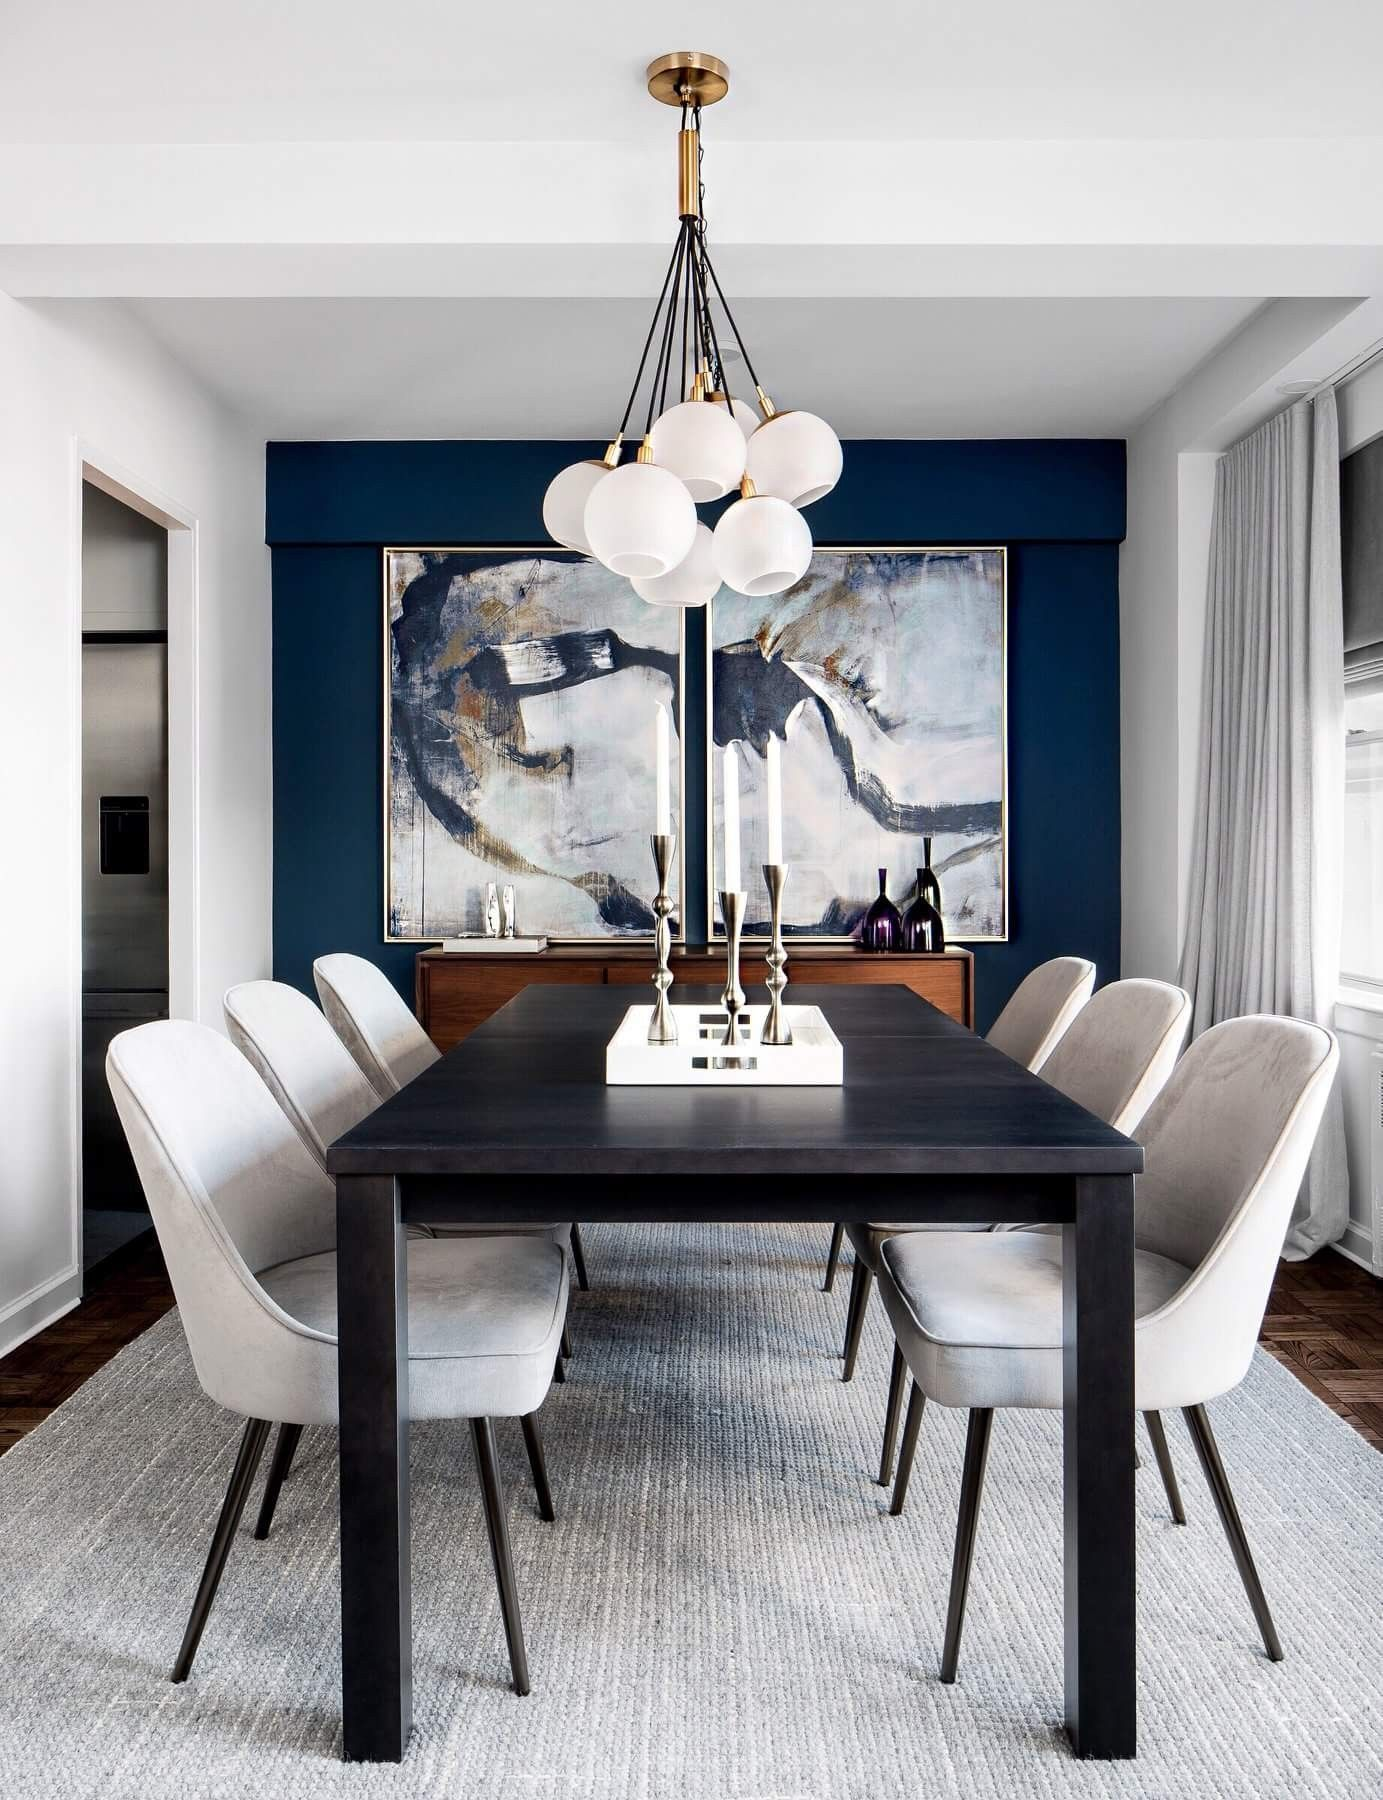 Start The New Year With Brand New Dining Room Lighting Here Www Lightingstores Eu Vi Small Dining Room Decor Black And White Dining Room Dining Room Blue